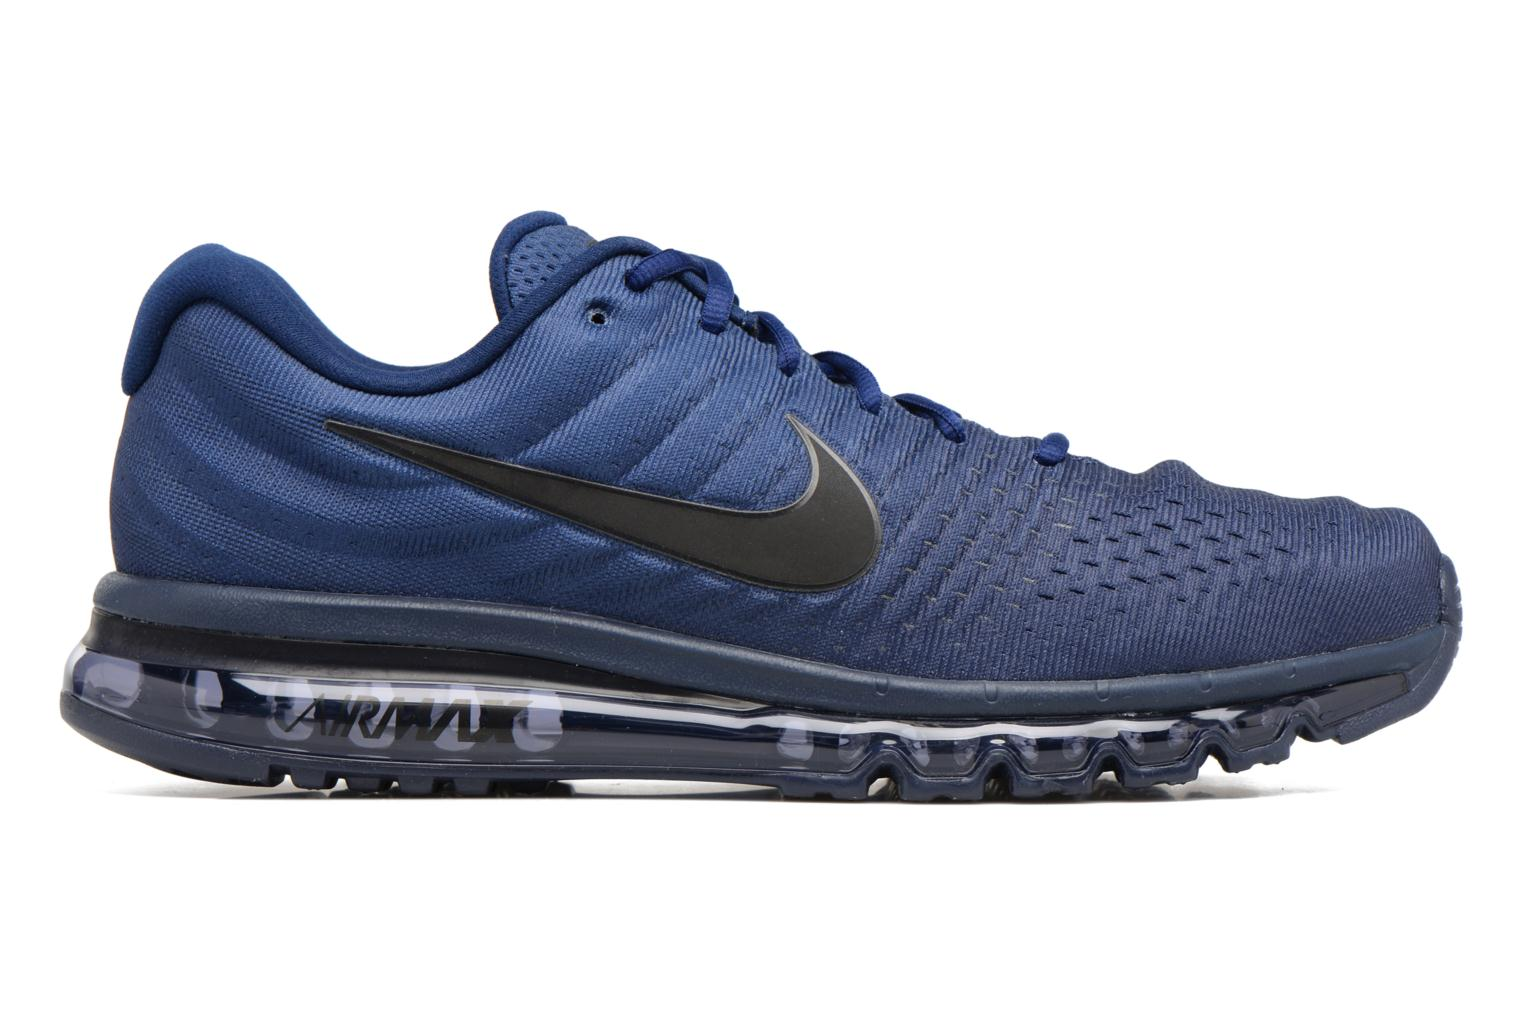 Nike Air Max 2017 Binary Blue/Black-Obsidian